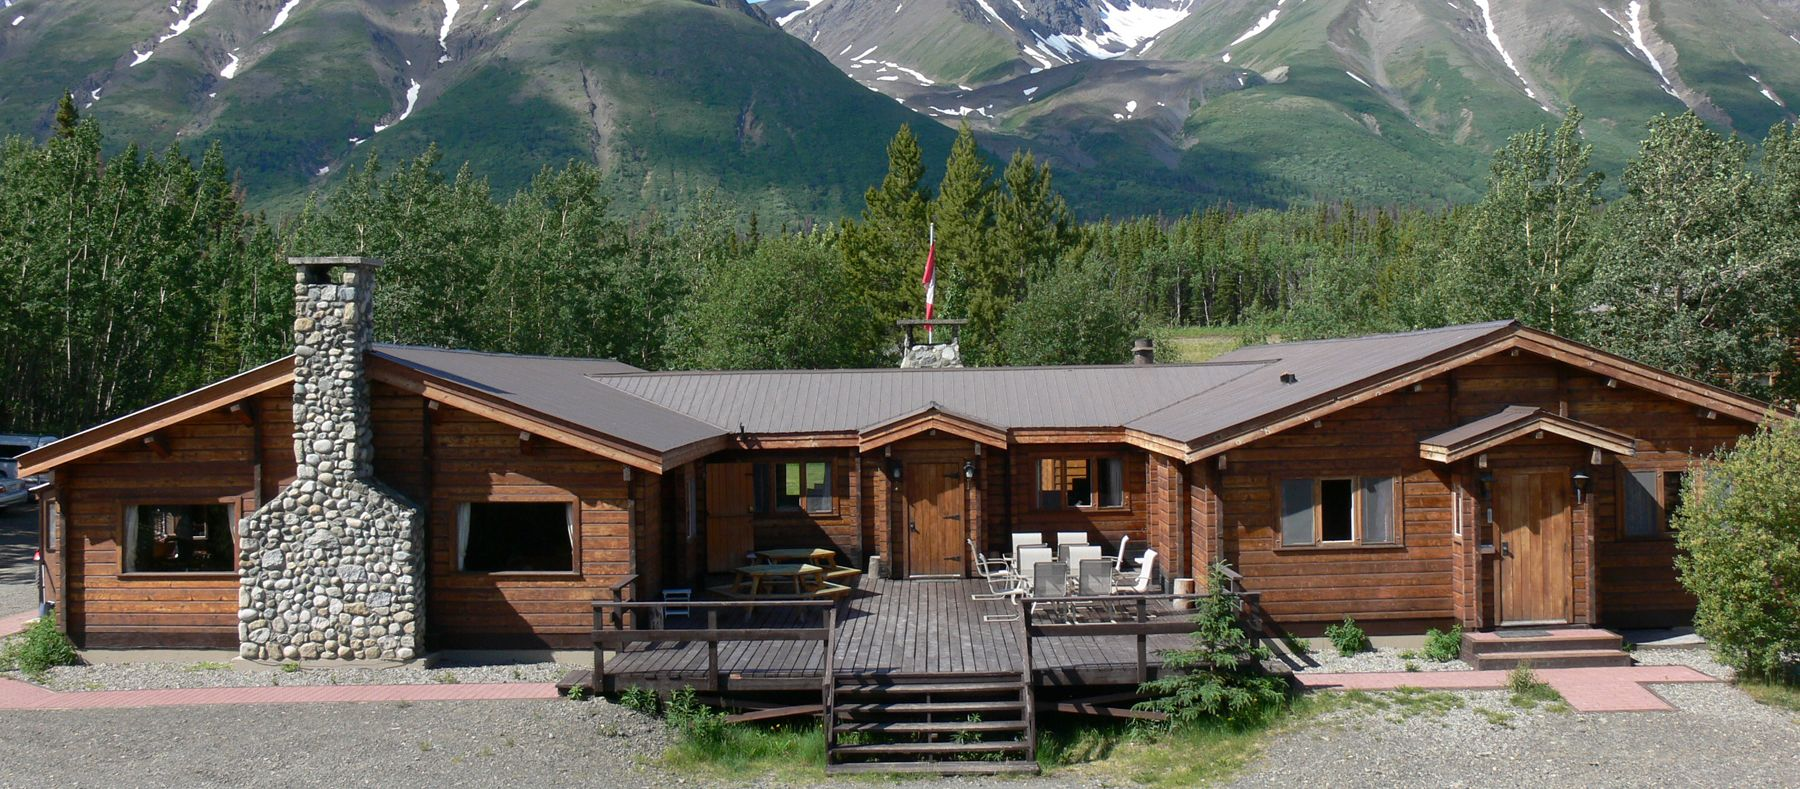 Dalton Trail Lodge